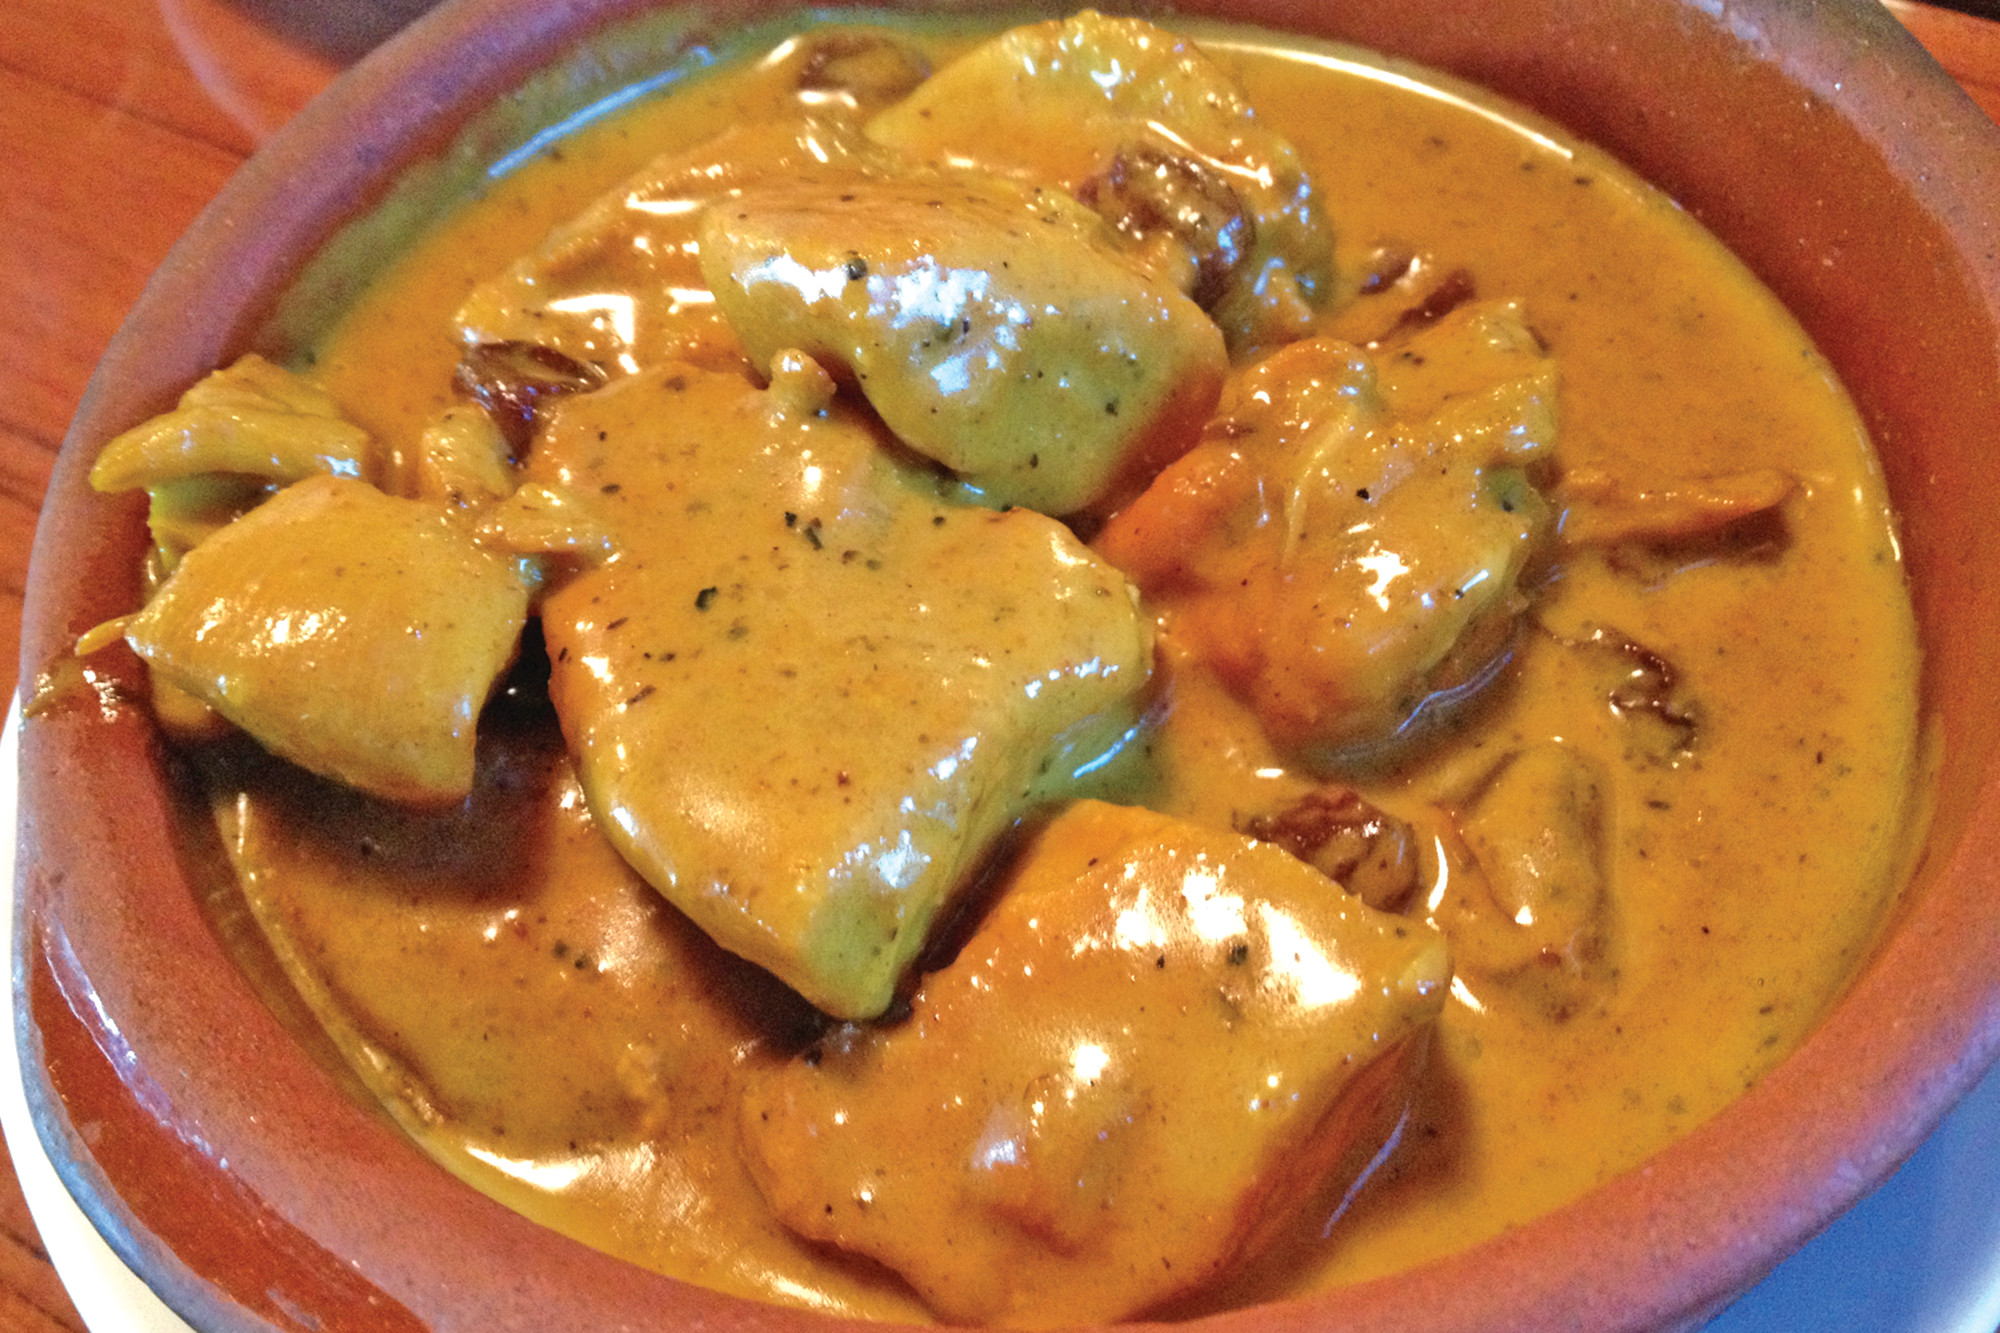 Chunks of tender white meat chicken breast are cooked in a creamy coconut curry sauce scattered with golden raisins.